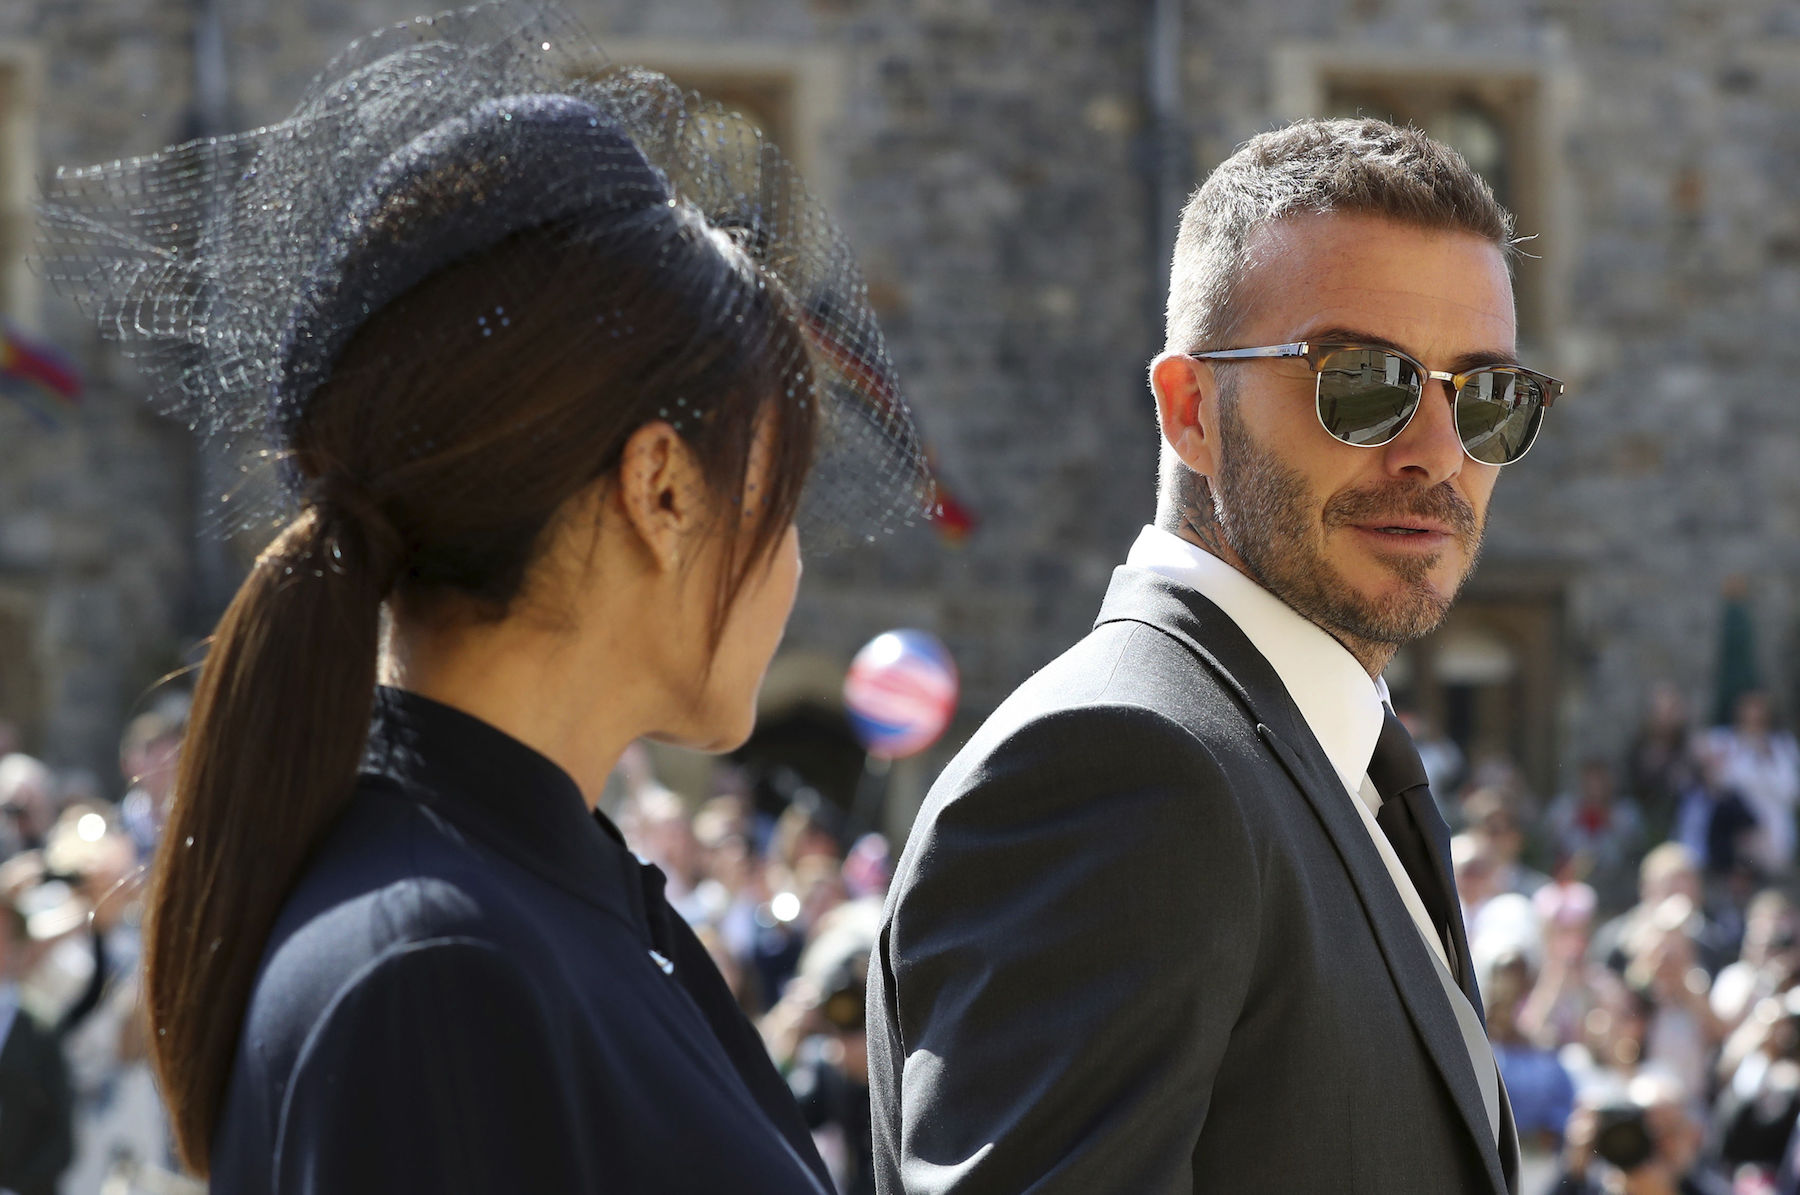 "<div class=""meta image-caption""><div class=""origin-logo origin-image ap""><span>AP</span></div><span class=""caption-text"">David Beckham and Victoria Beckham arrive for the wedding ceremony of Prince Harry and Meghan Markle at St. George's Chapel in Windsor Castle. (Gareth Fuller/pool photo via AP)</span></div>"